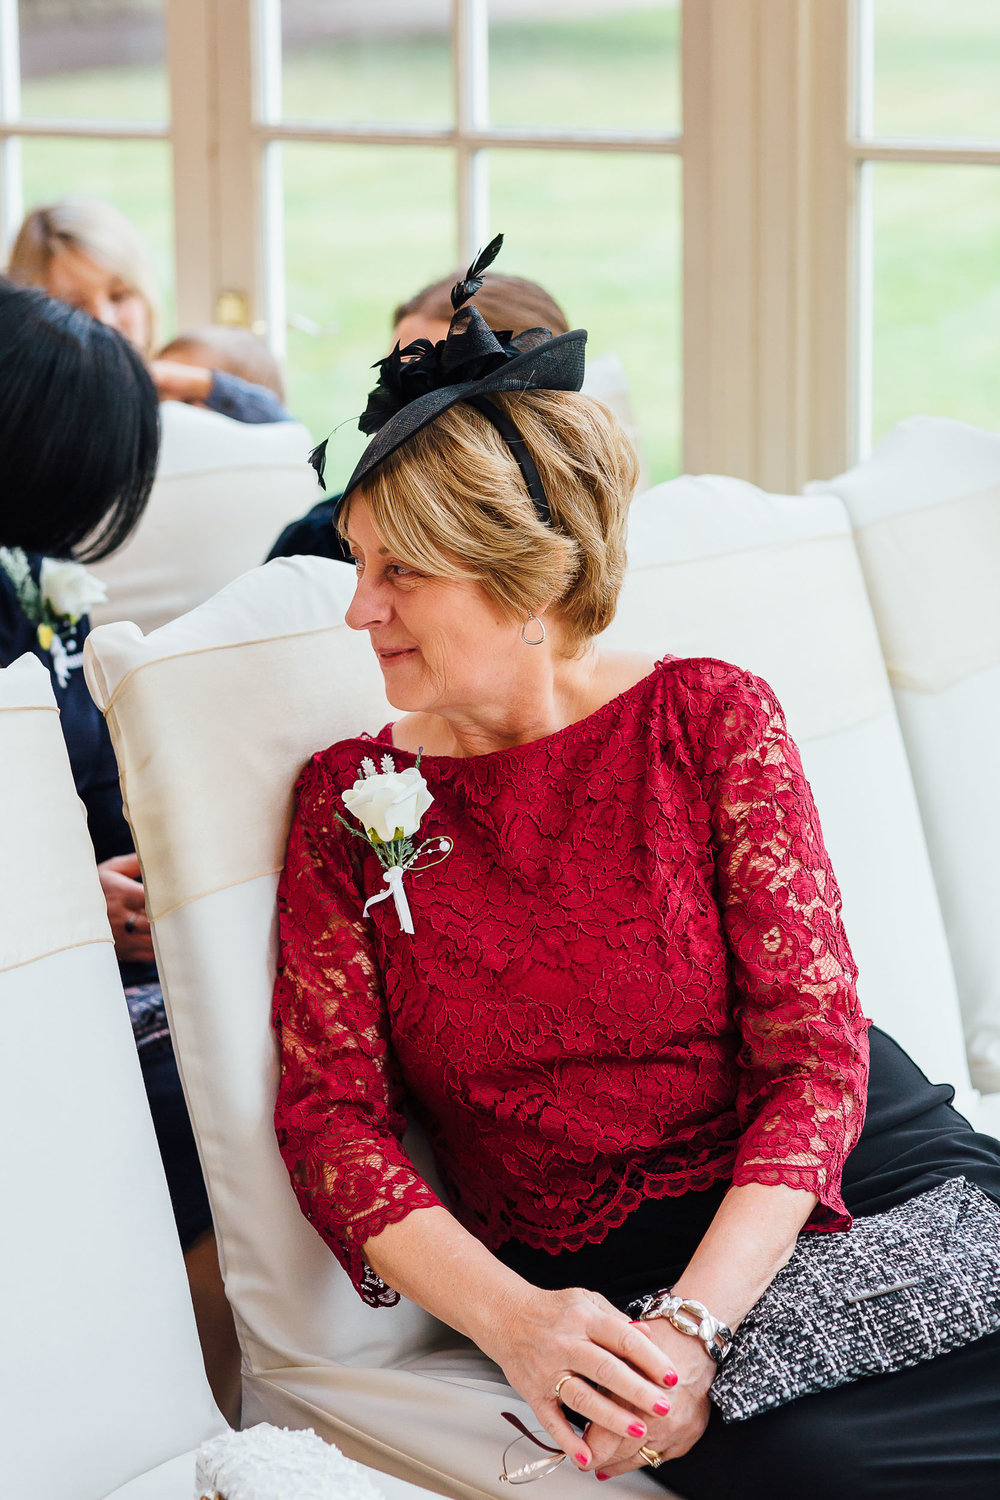 Wedding-Dovecliff-Hall-Hotel-professional-photographer-natural-documentary-nottingham-derby-153.jpg